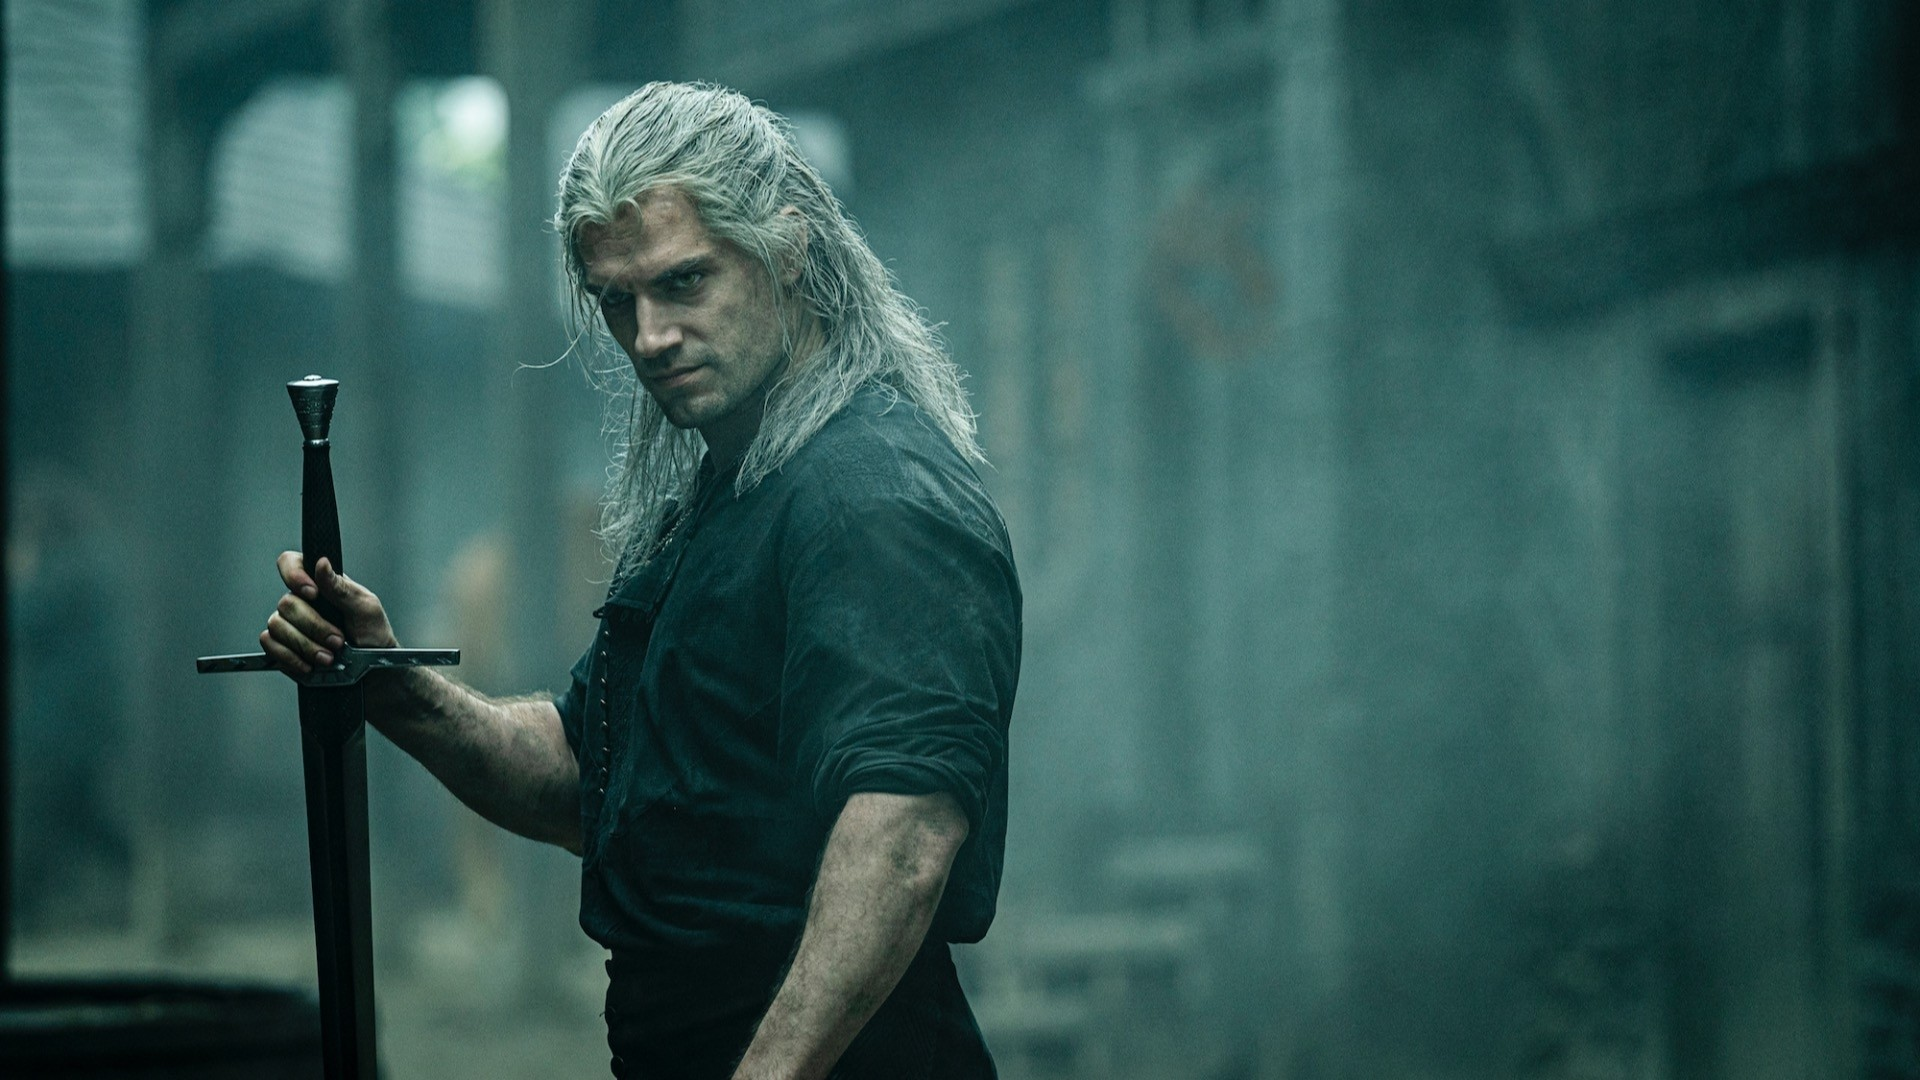 The Witcher Staffel 1 Bild 2